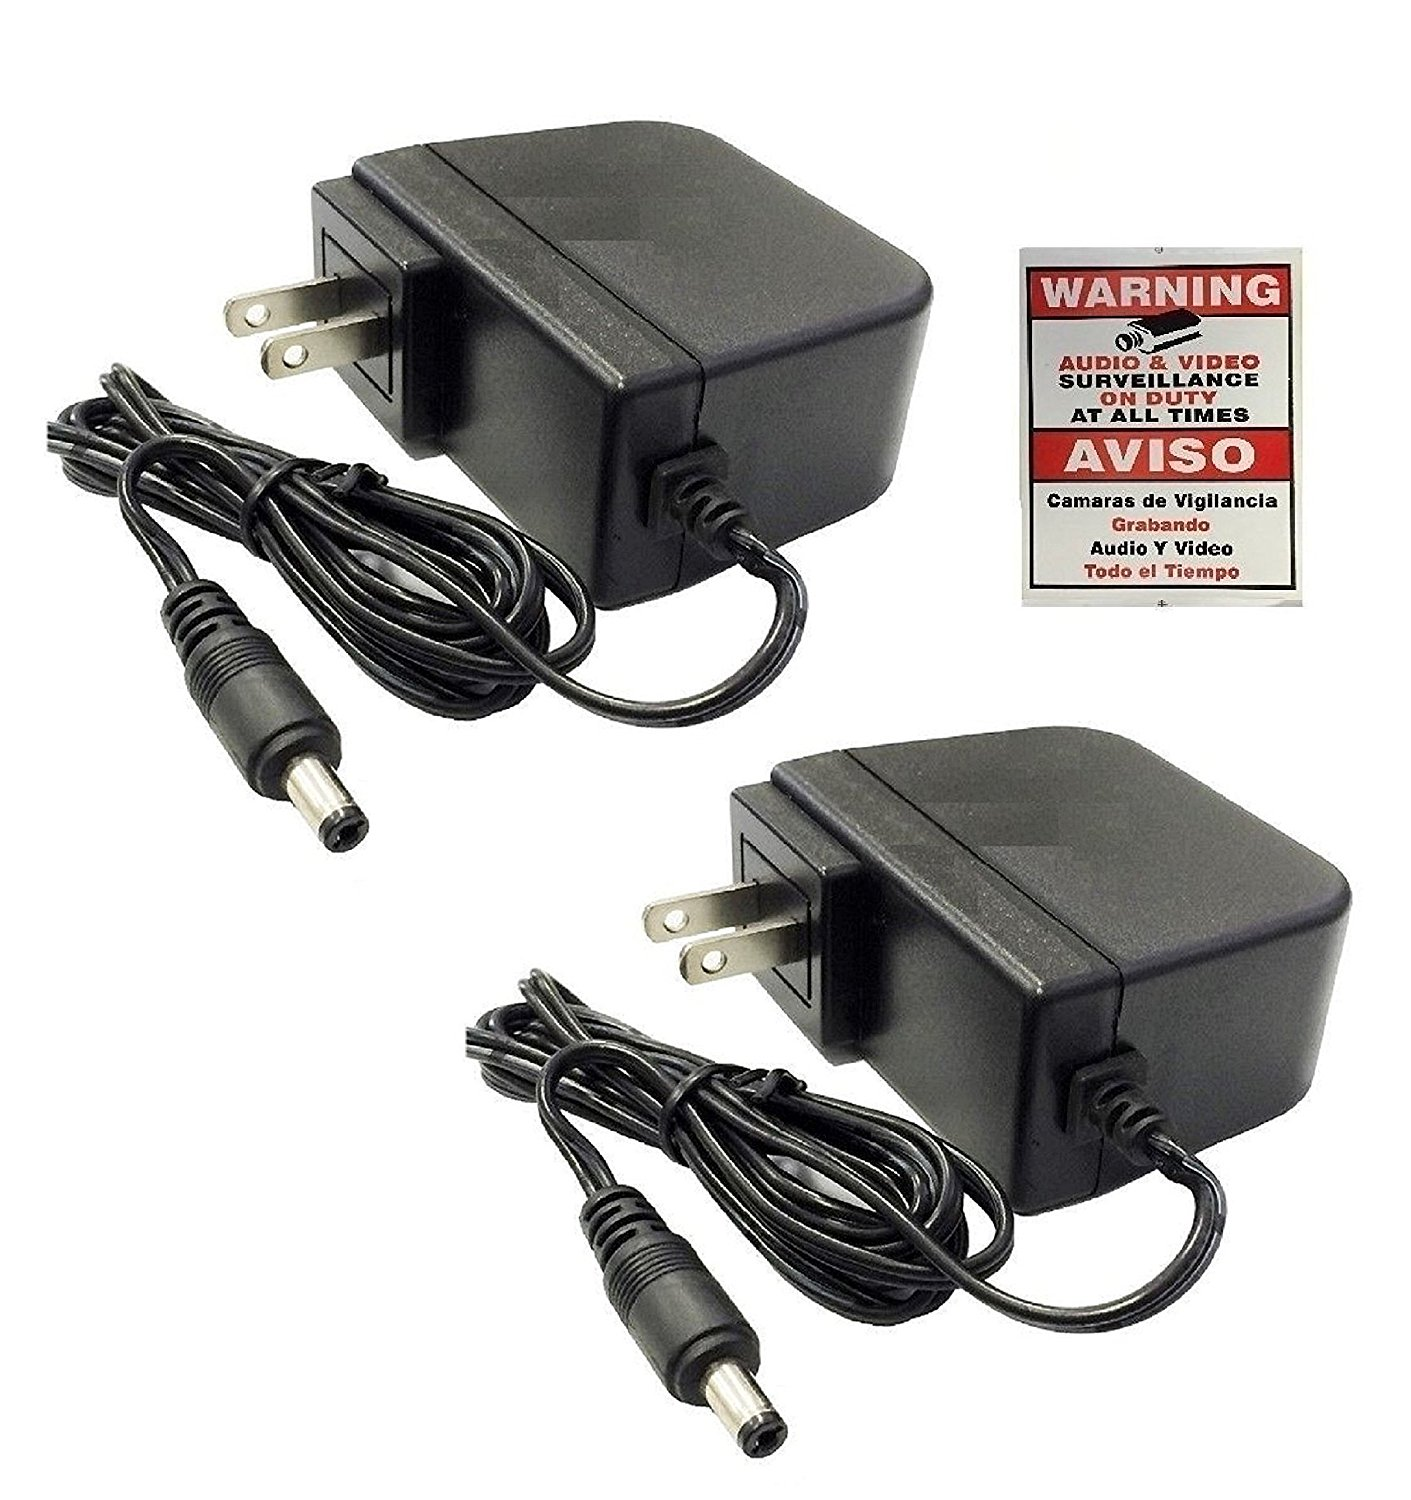 Cheap 5 Volt 2 Amp Power Supply Find 15 1 Regulated Get Quotations Pack 12v 2a 12 Dc Surveillance Camera For Night Owl